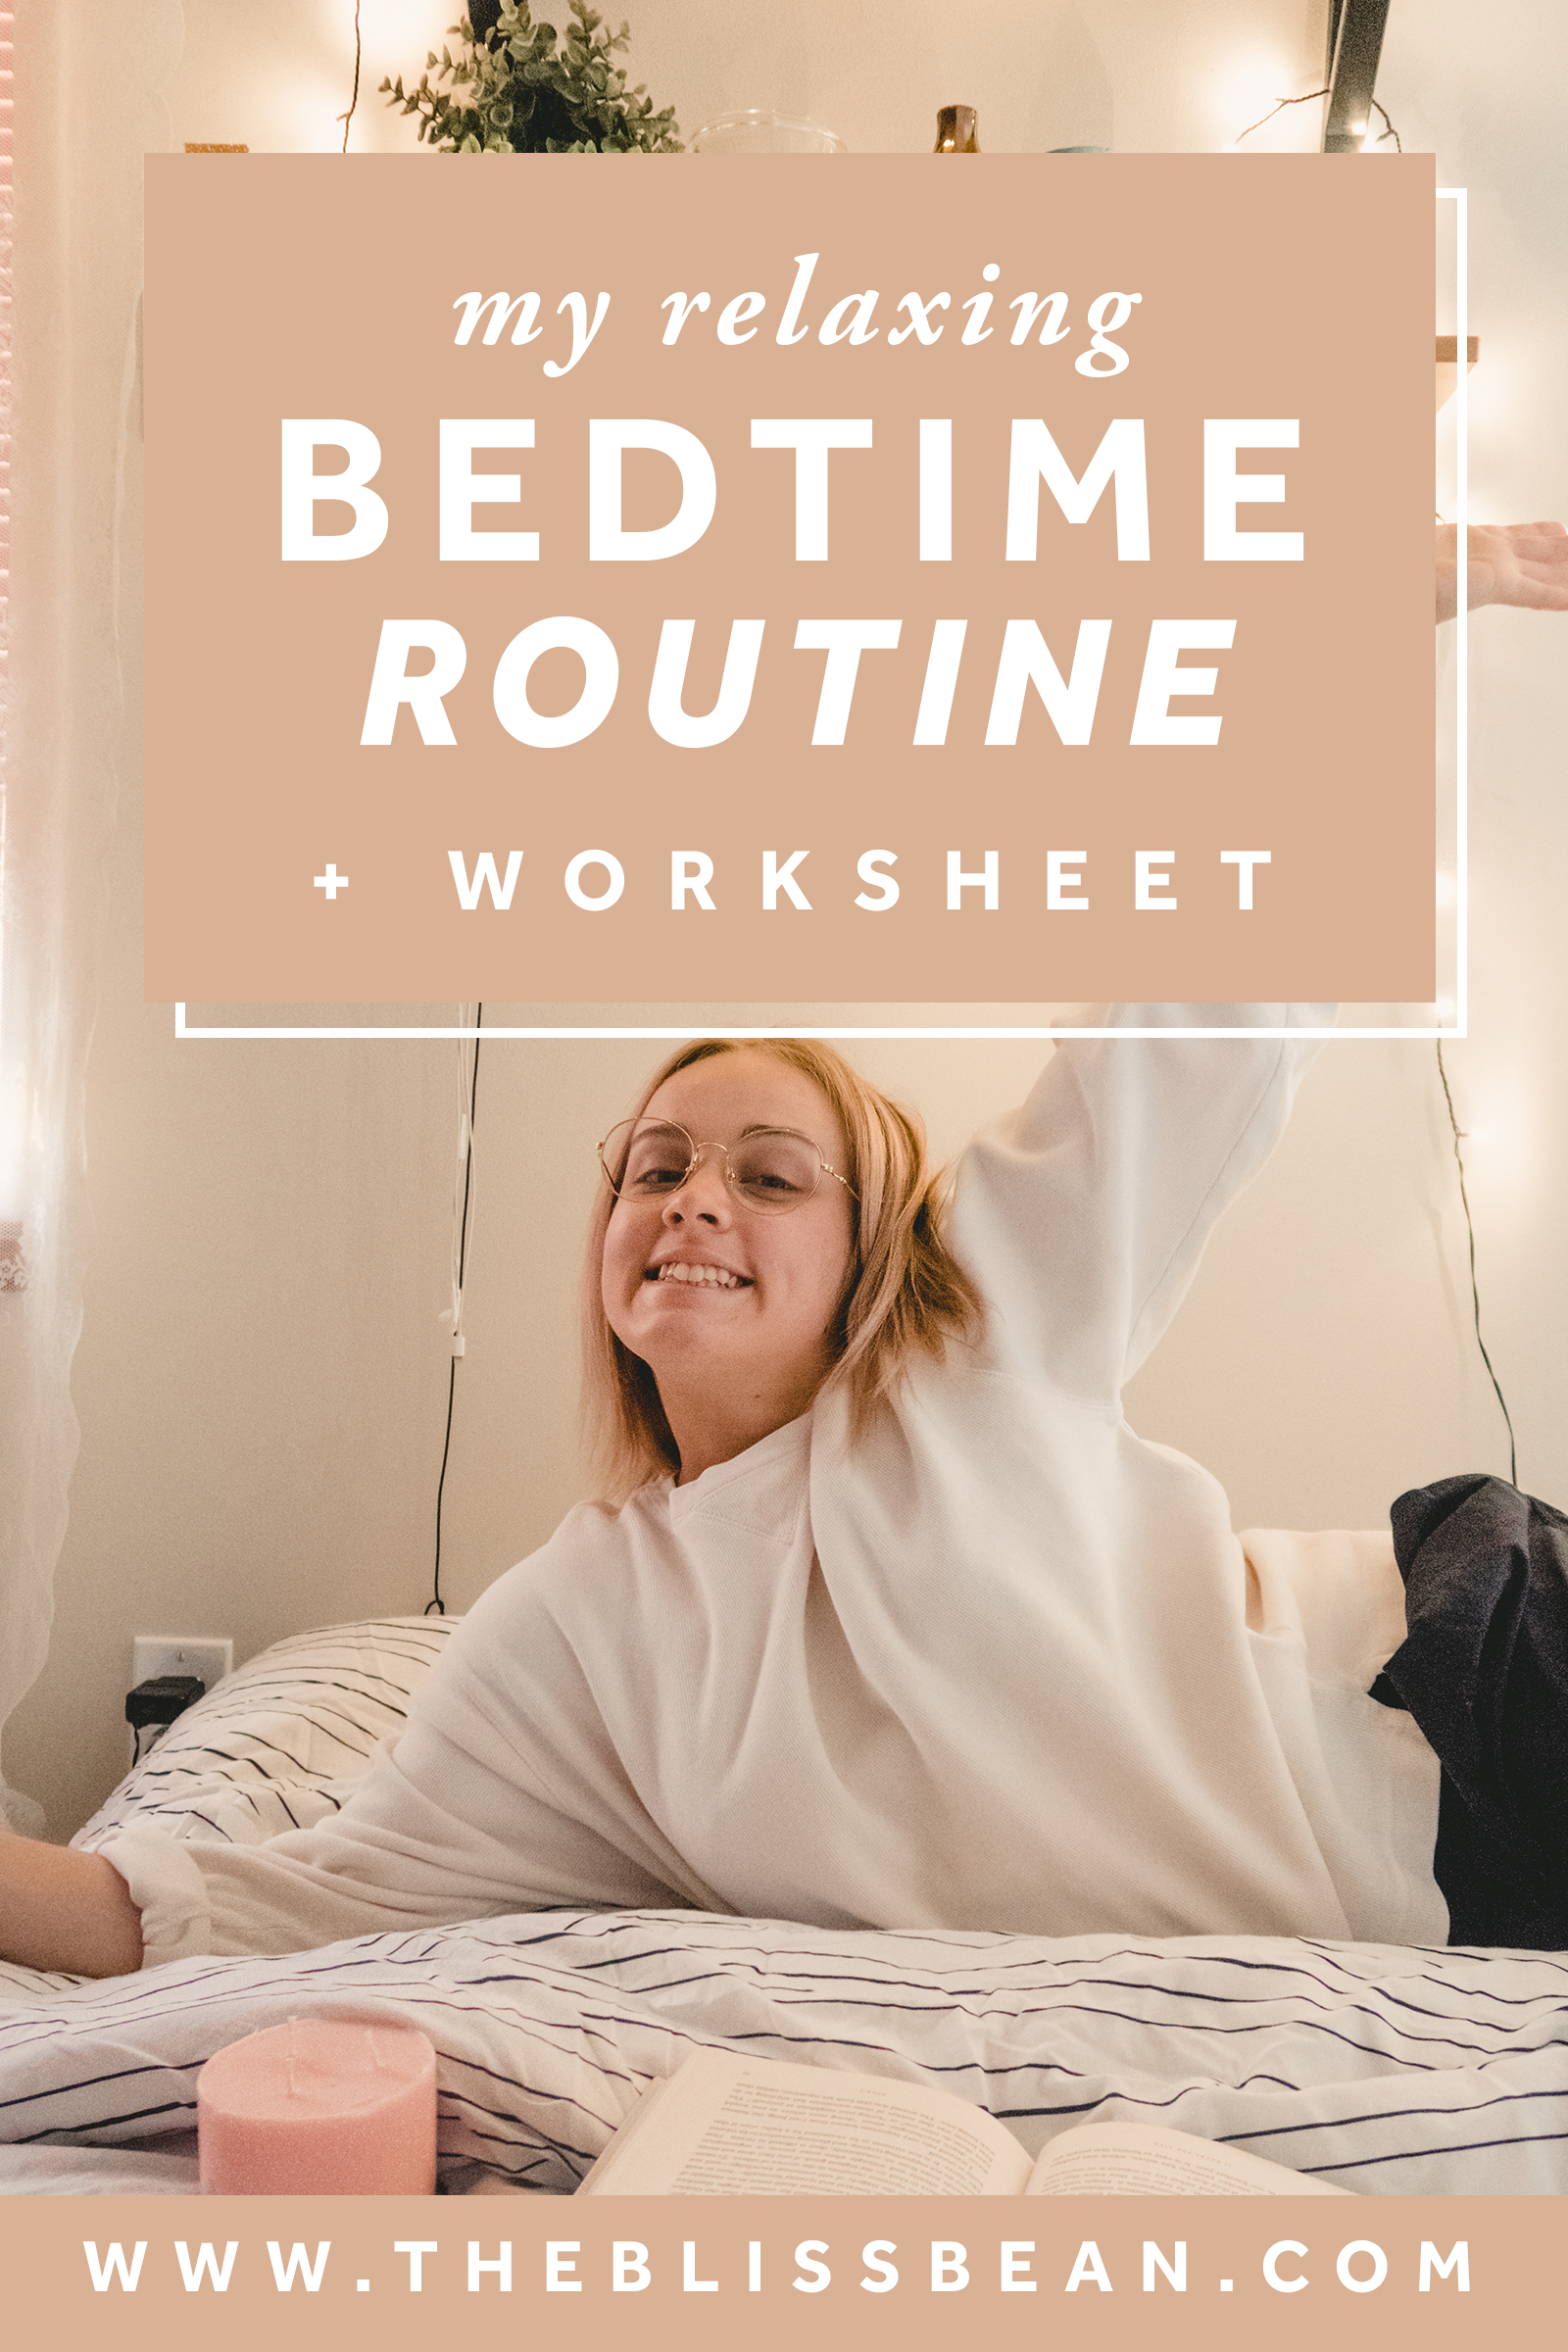 1 - Cover Image - My bedtime routine.jpg